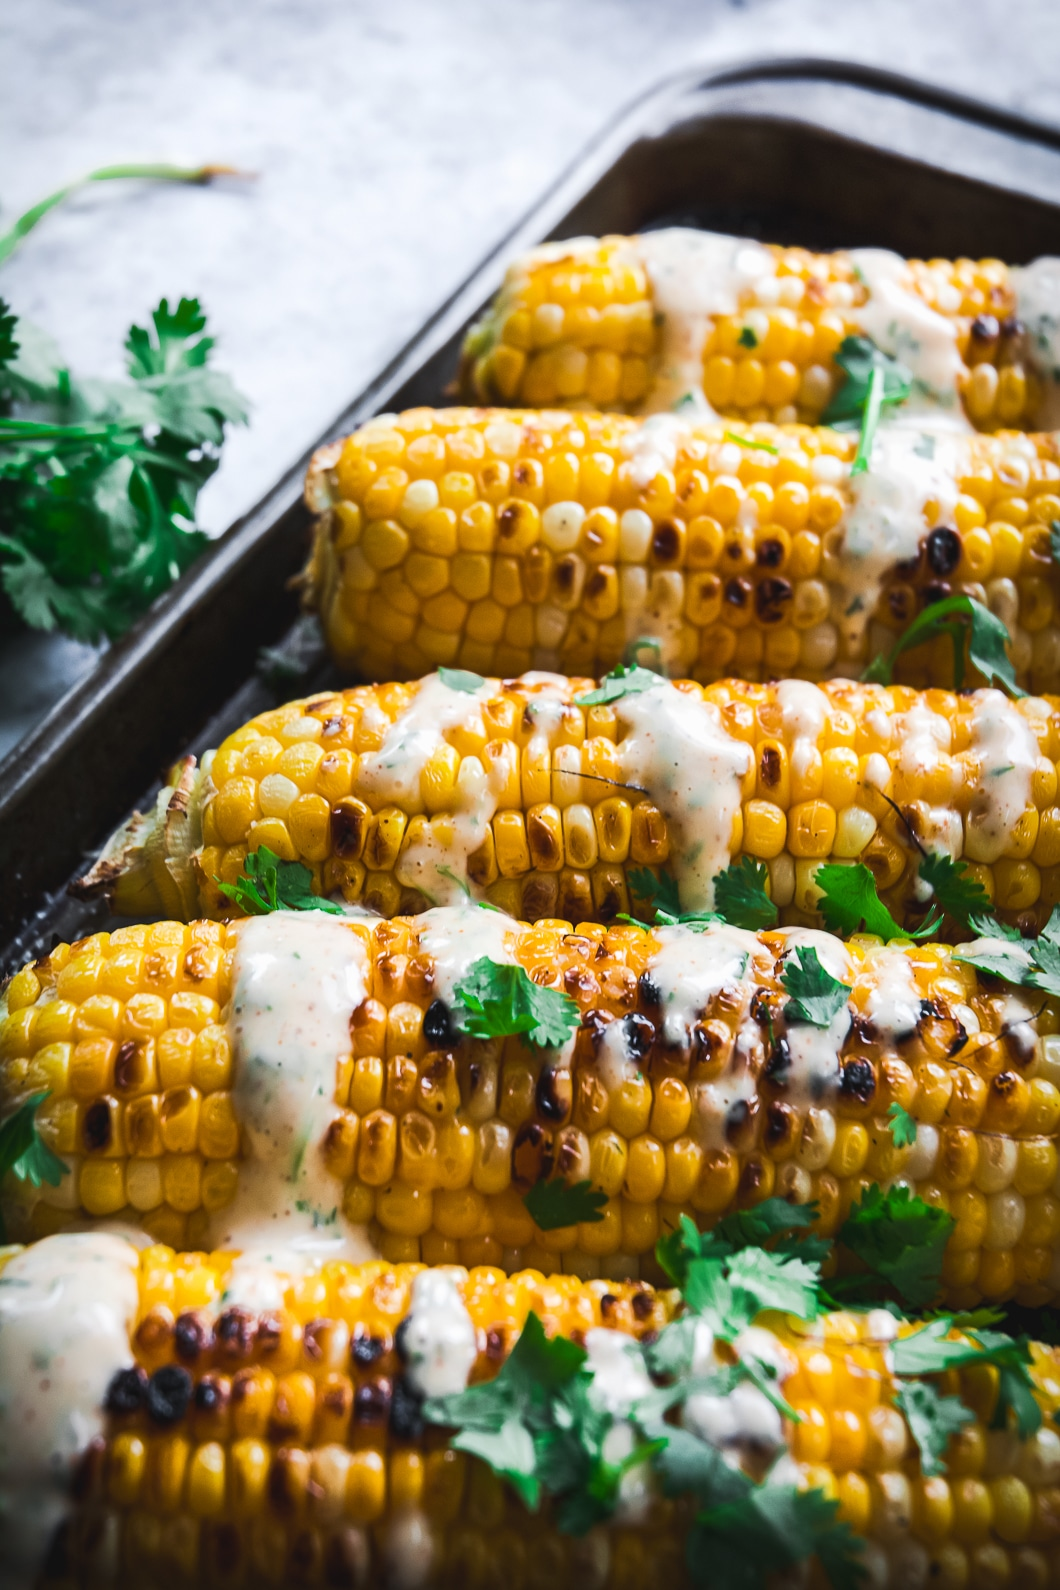 Grilled Corn with Spicy Habanero Honey Mayo up close on tray with cilantro